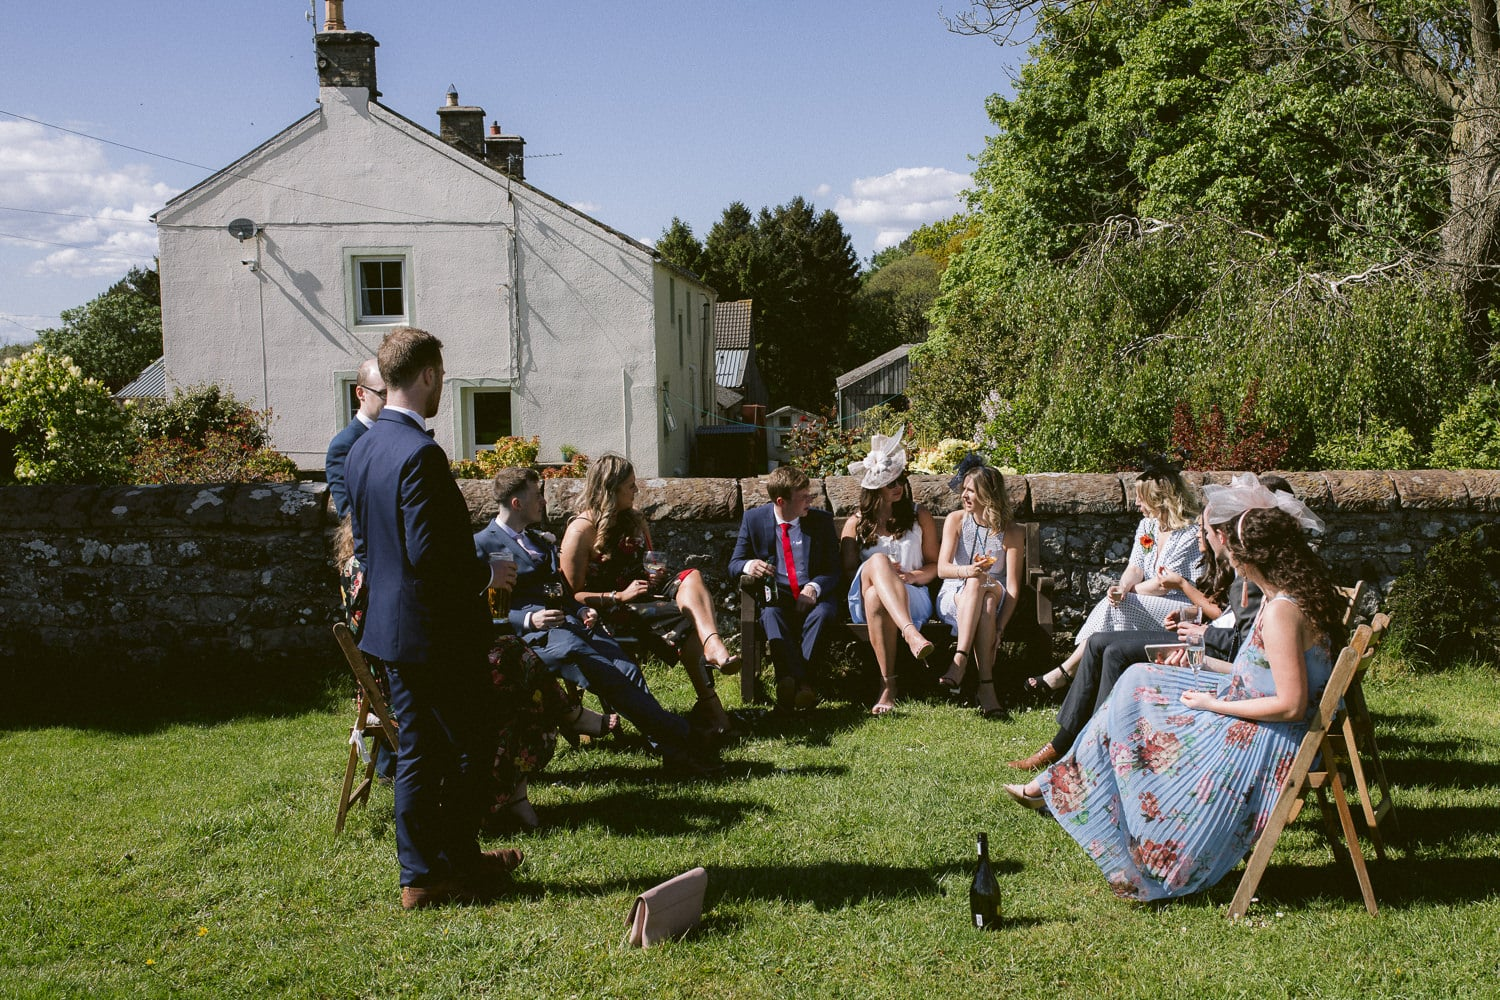 Sunny Day Outside with Wedding Guests